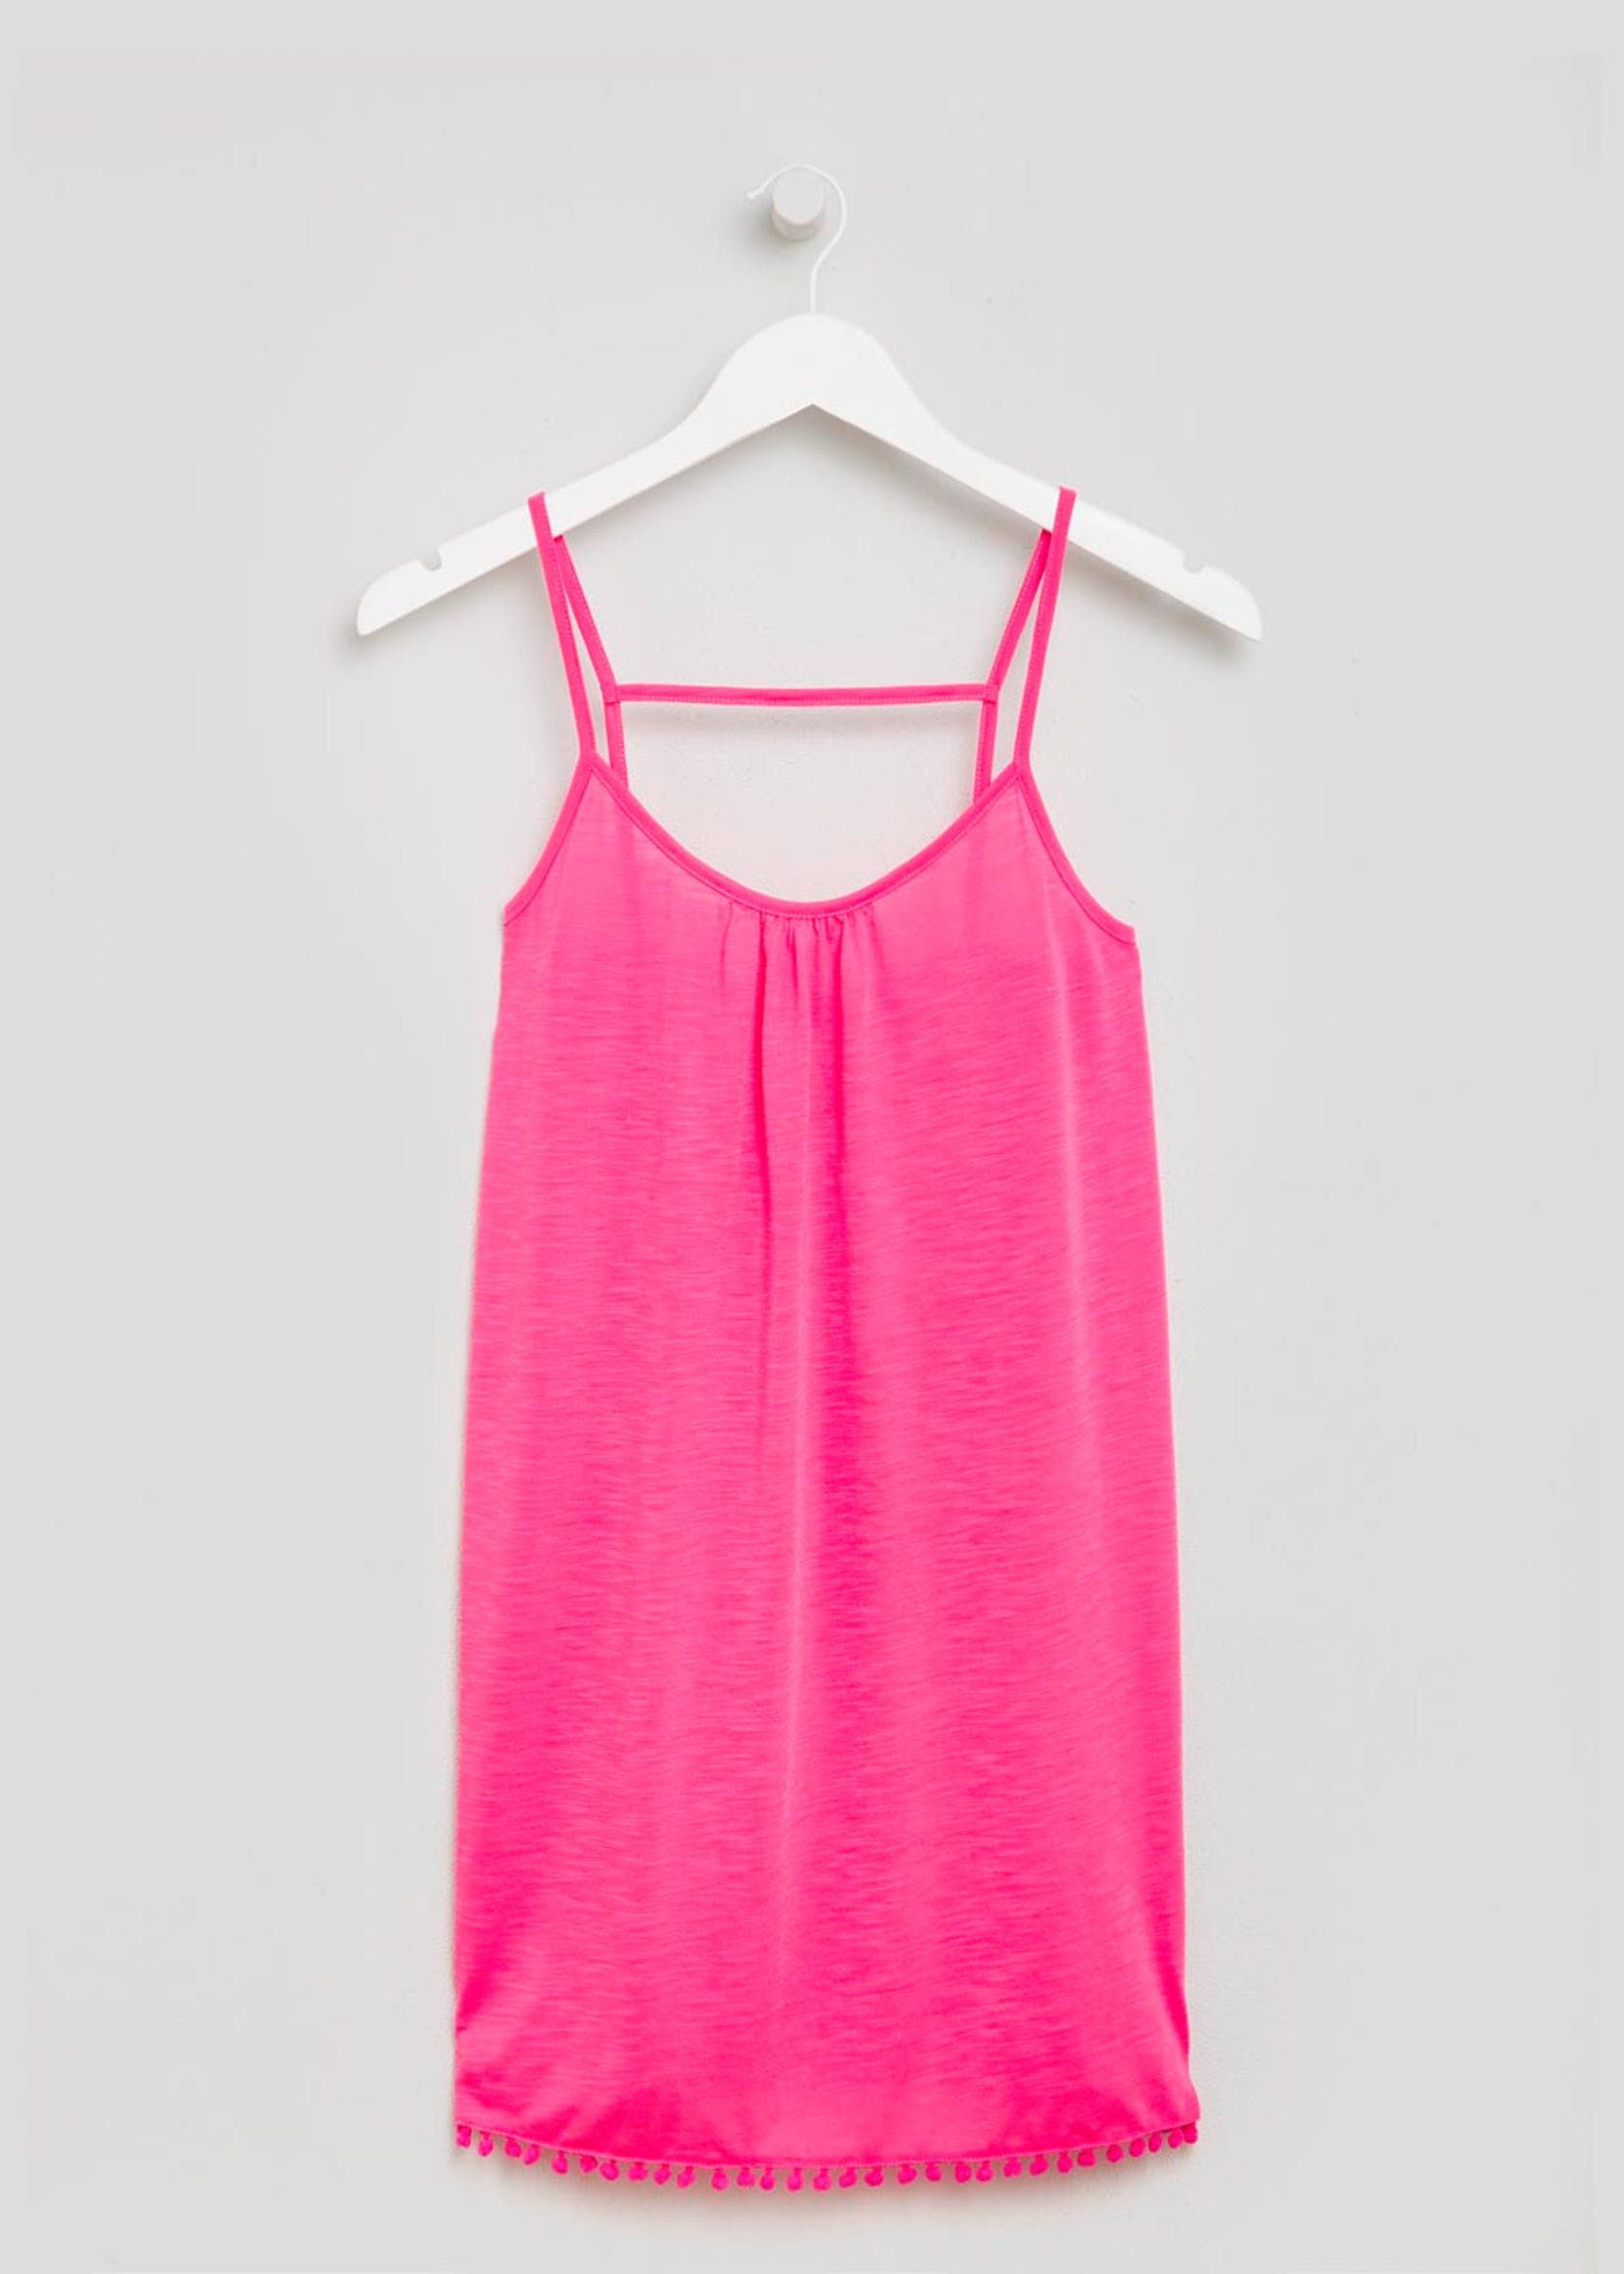 Pom Pom Swing Vest Beach Dress Pink Beach dress, Pink